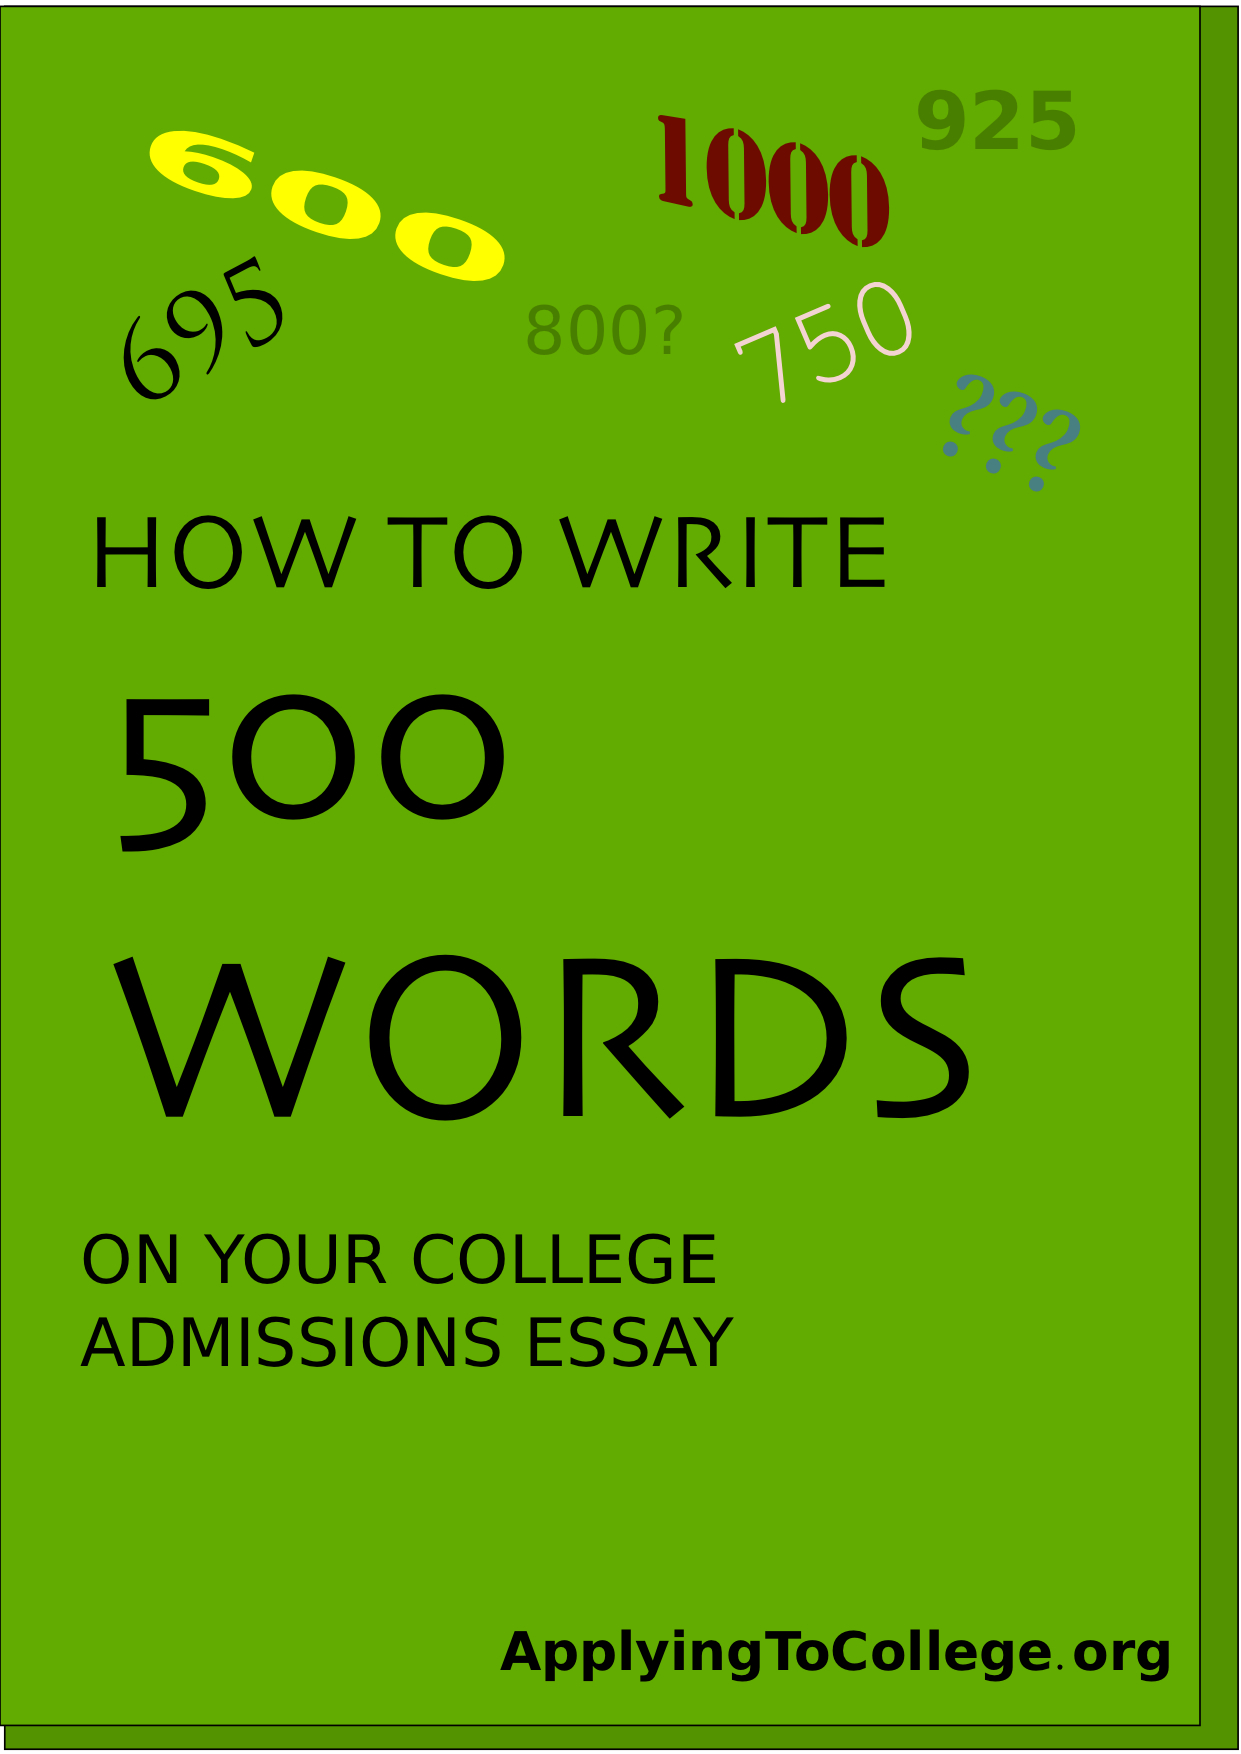 Custom admissions essay 500 words